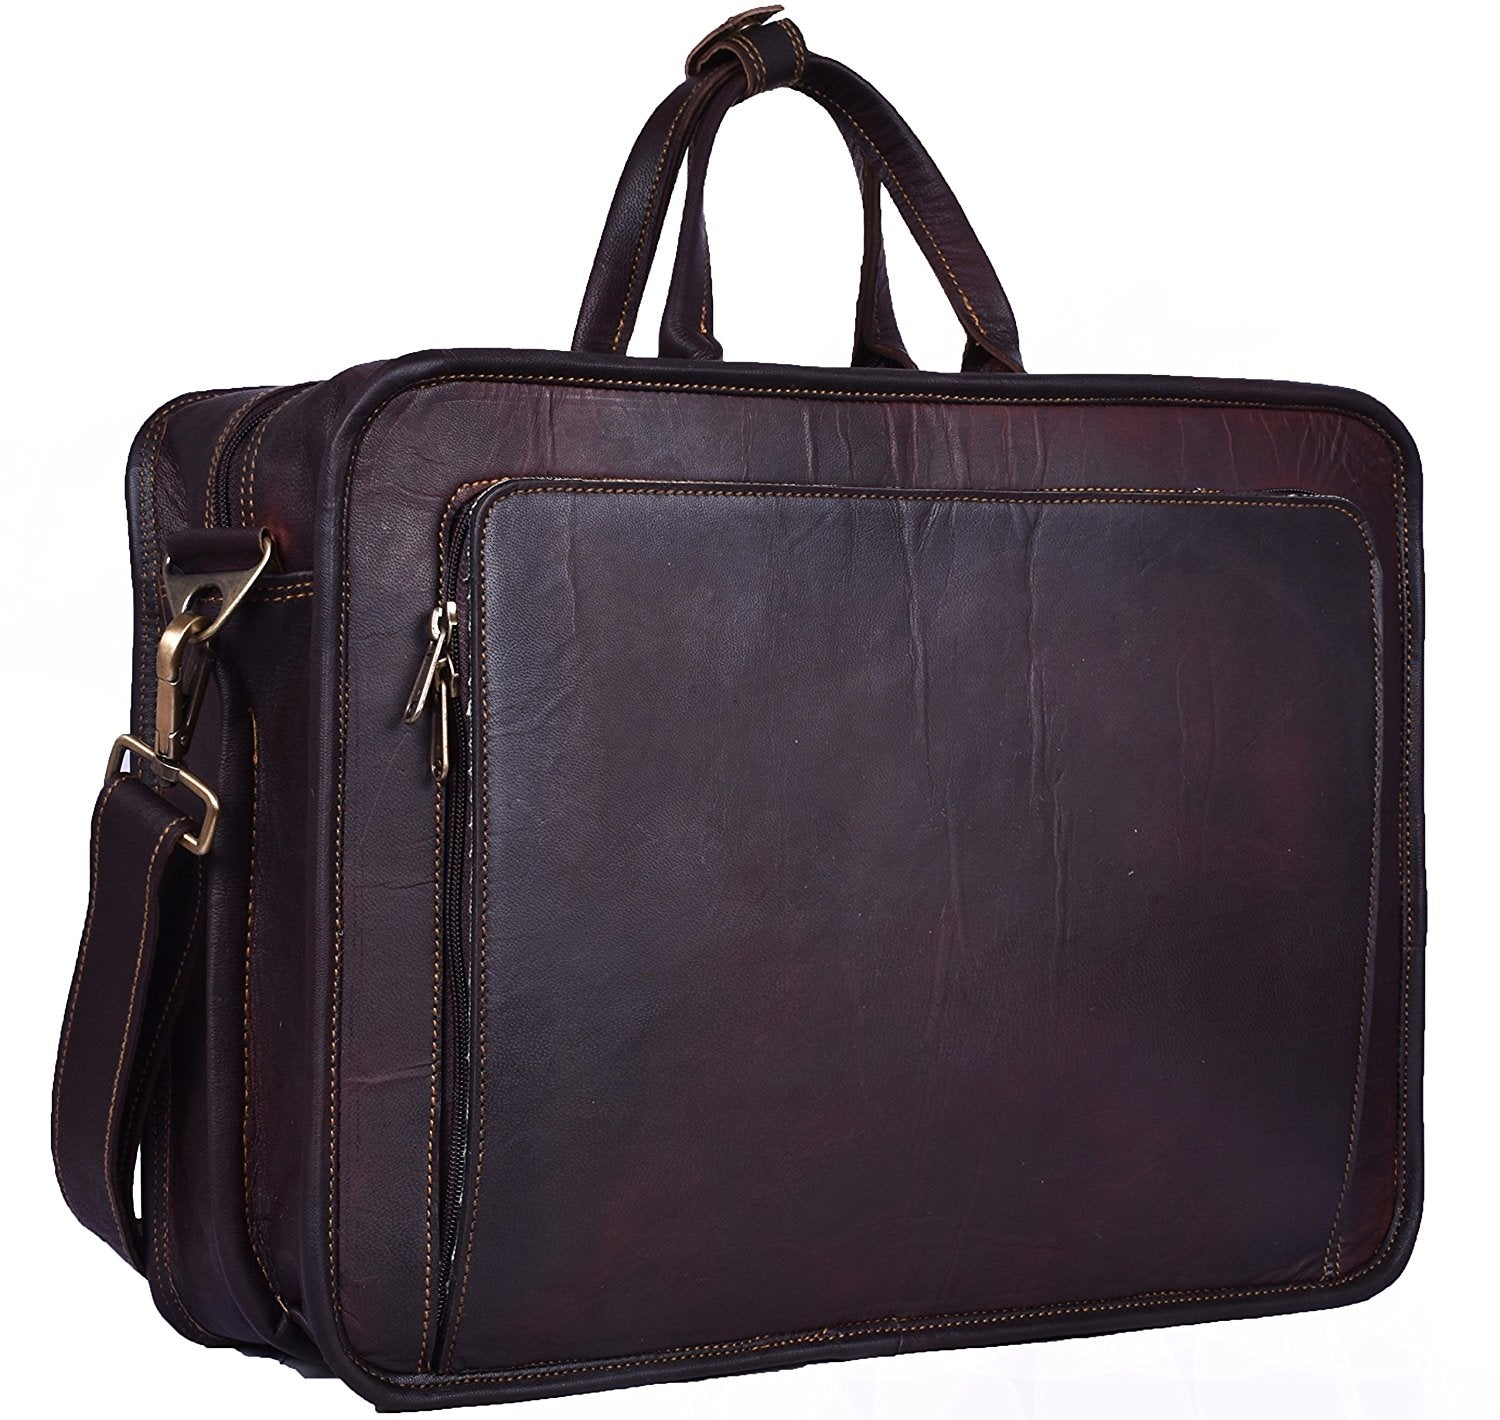 Rustic Brown Briefcase Bag by Hulsh